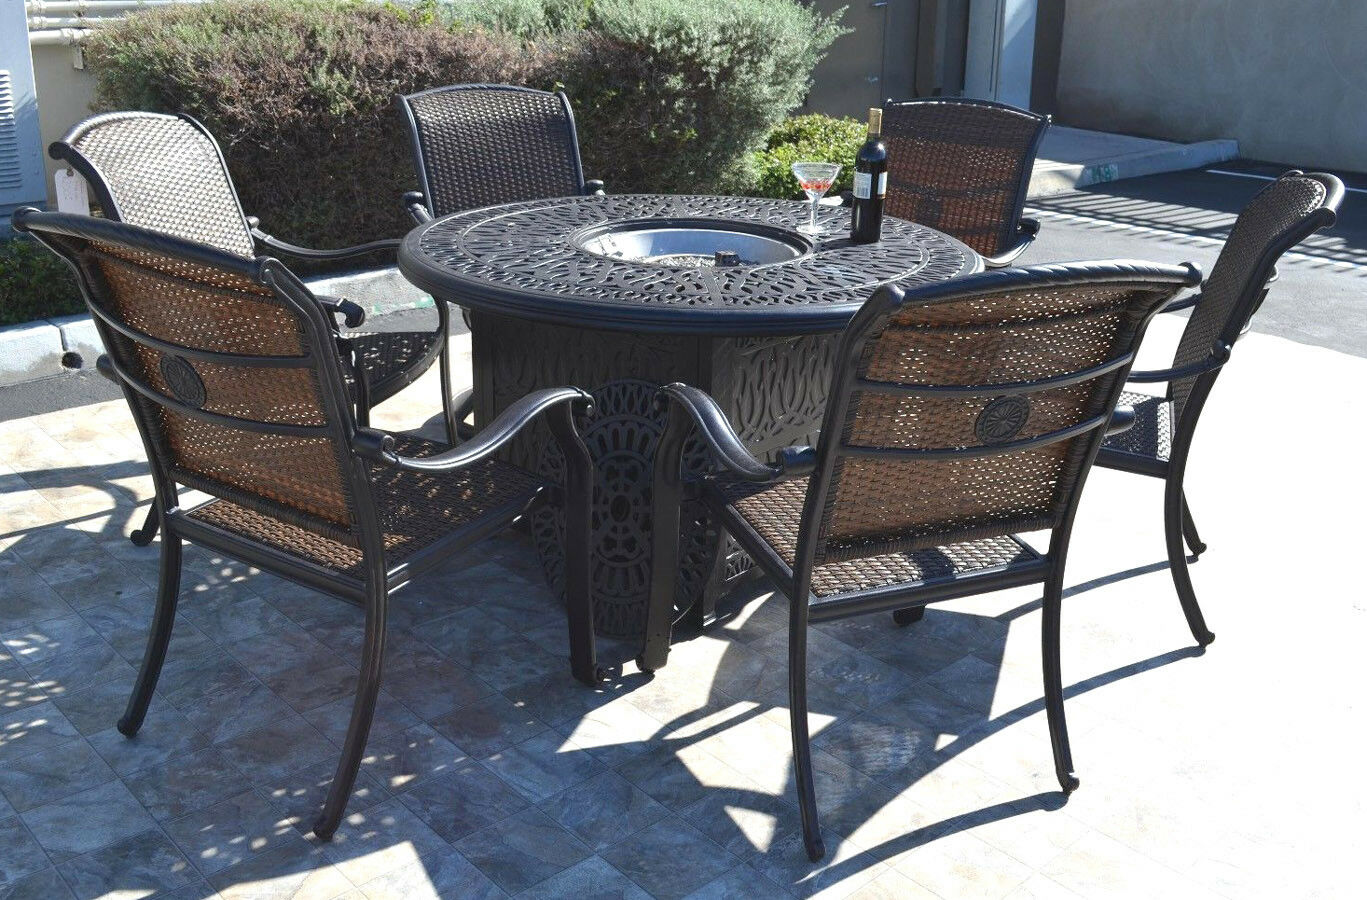 Cast Aluminum Wicker Furniture Patio 7pc Fire Pit Dining Set With Round Table For Sale Online